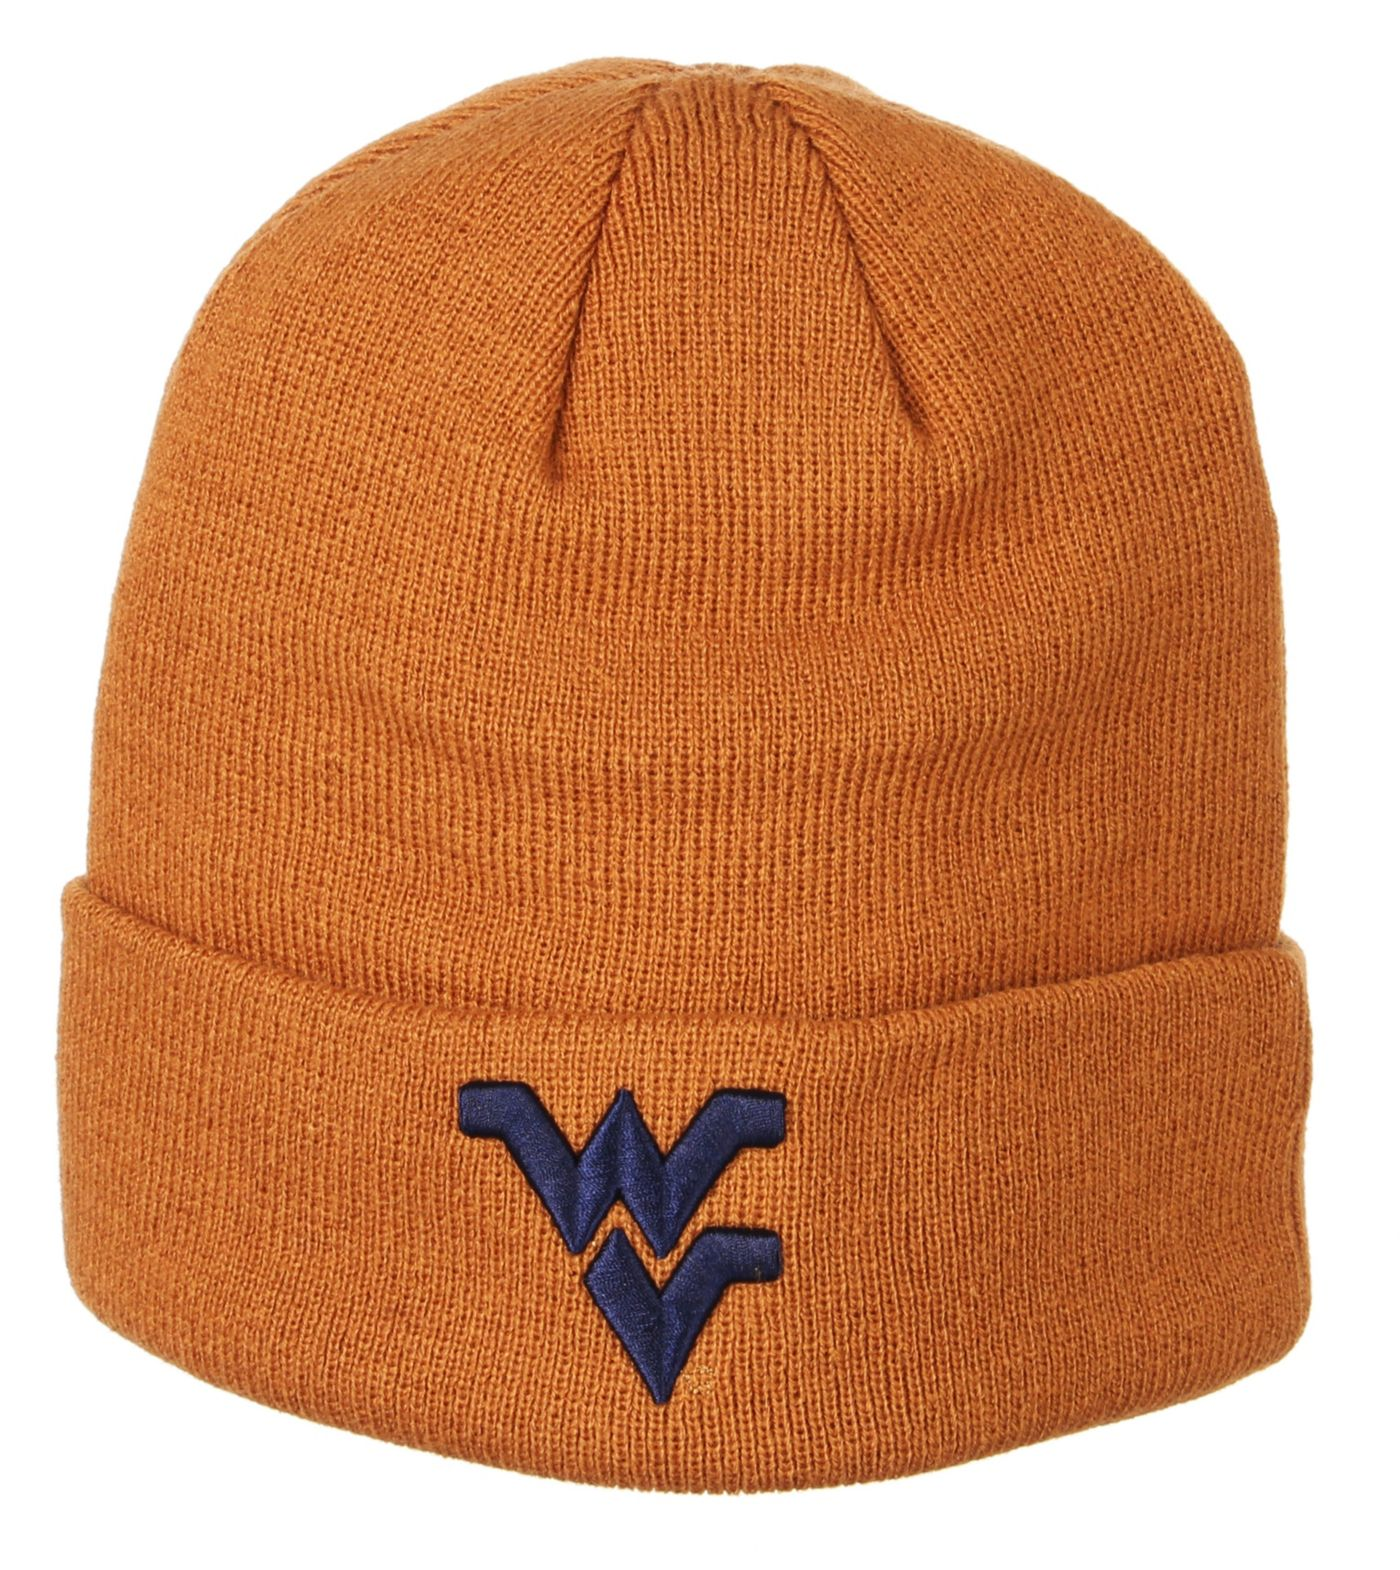 Zephyr Men's West Virginia Mountaineers Brown Cuffed Knit Beanie